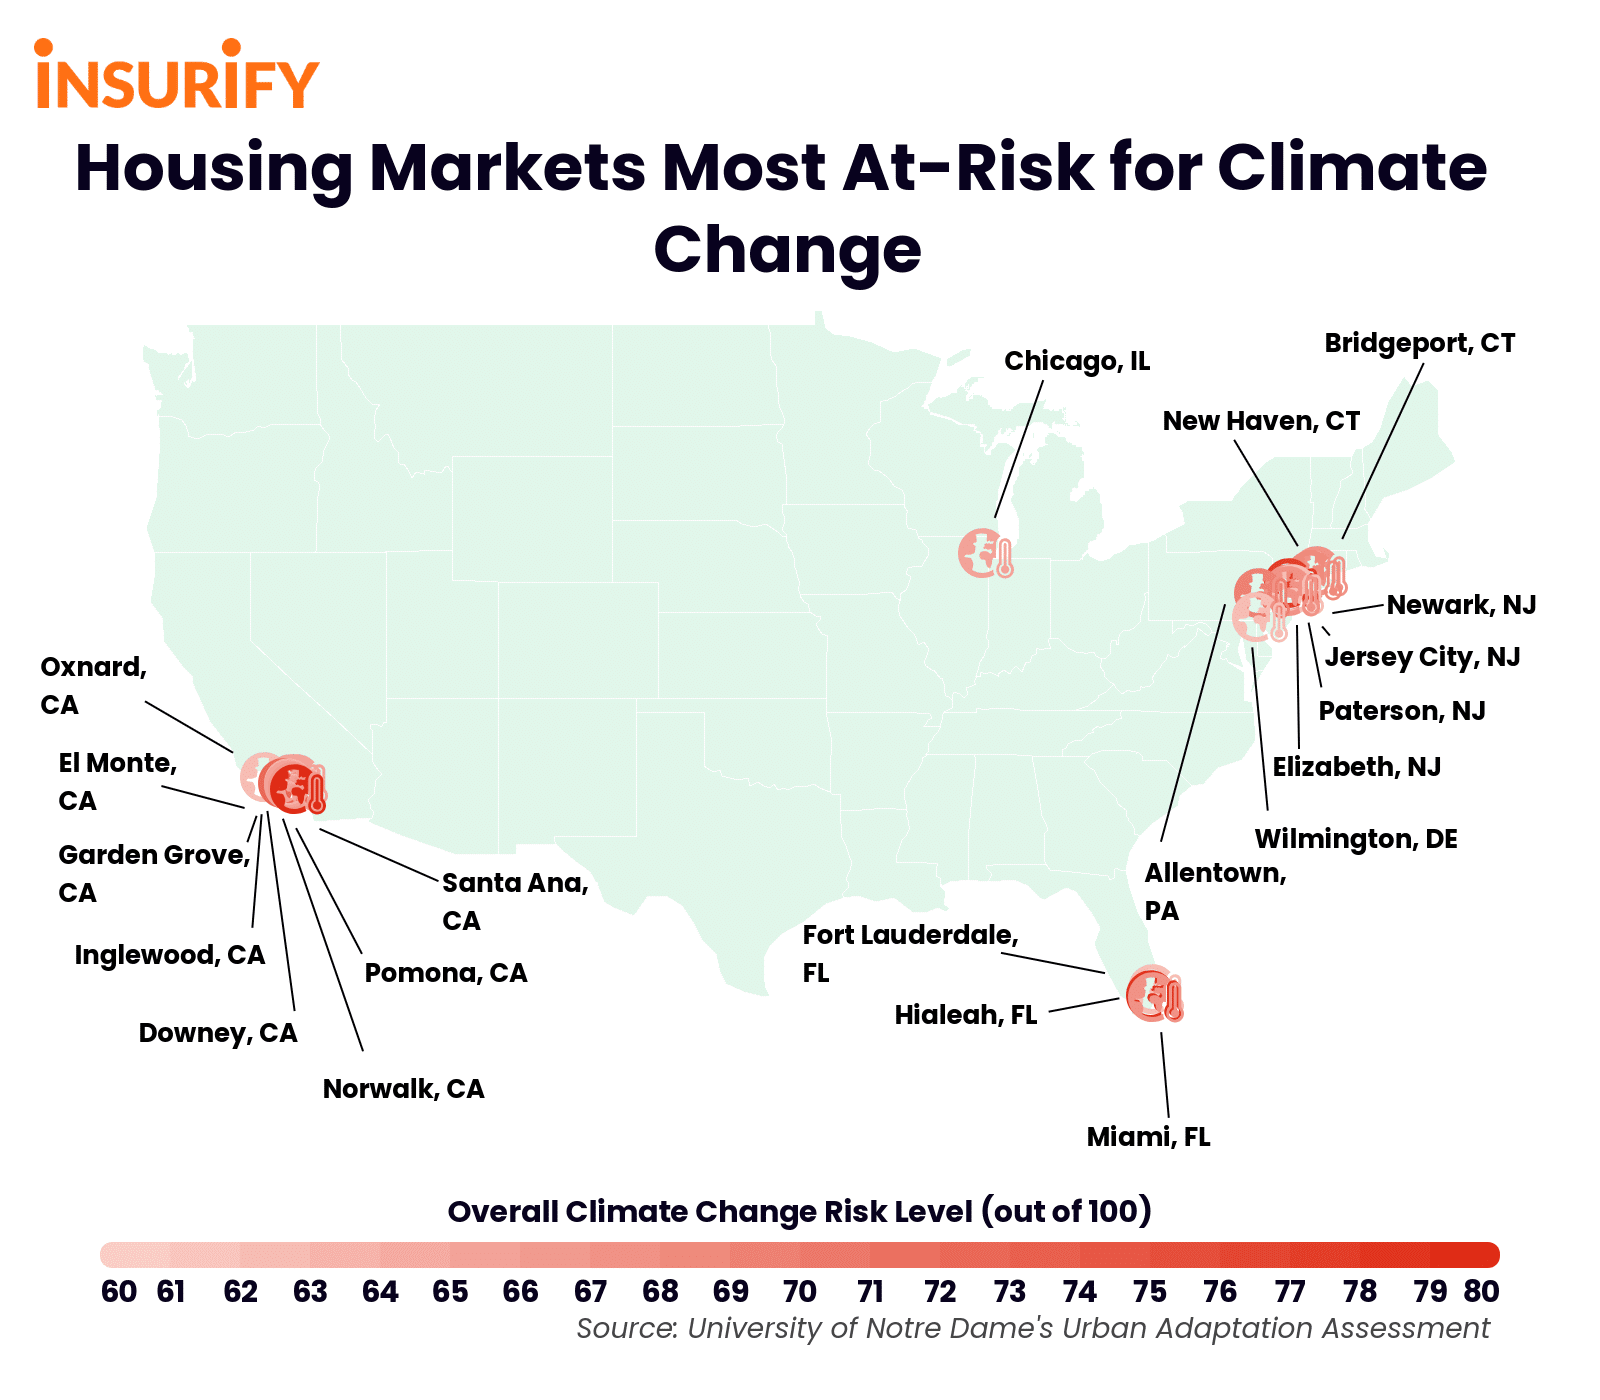 Icon map showing which U.S. cities' housing markets will be most affected by climate change in the 21st century.